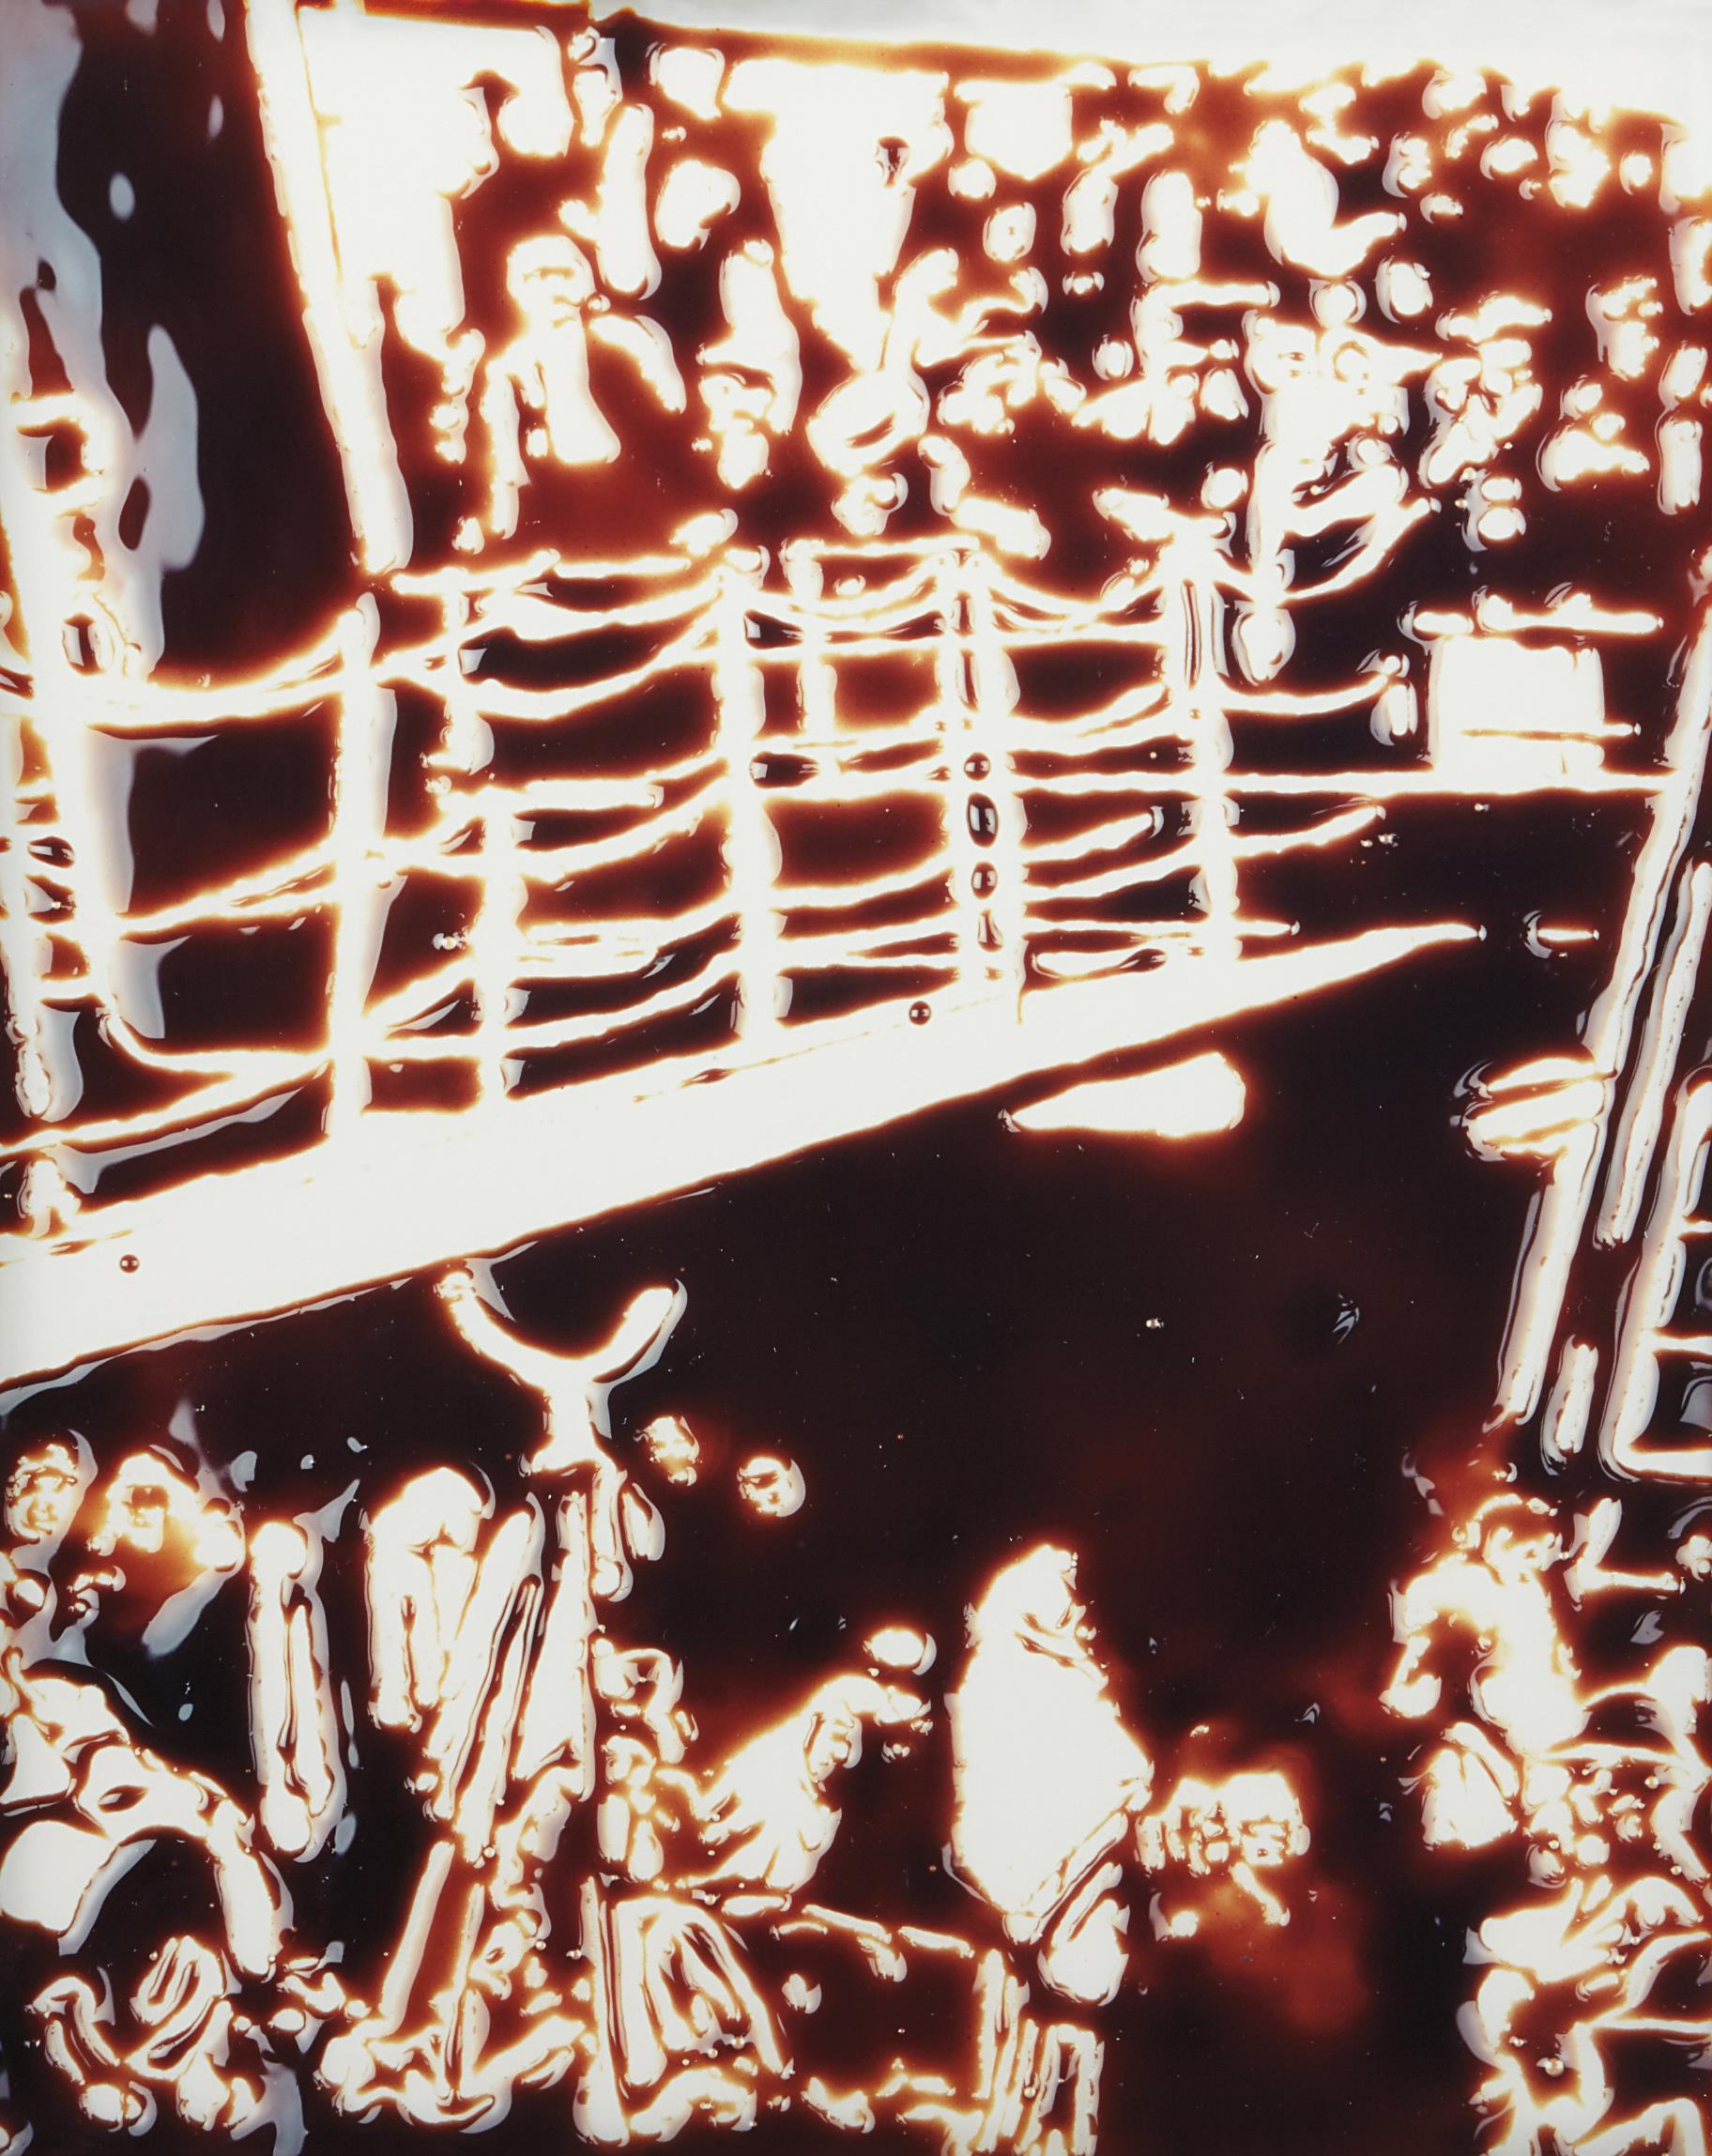 Vik Muniz-The Steerage, After Stieglitz From Pictures Of Chocolate-2000